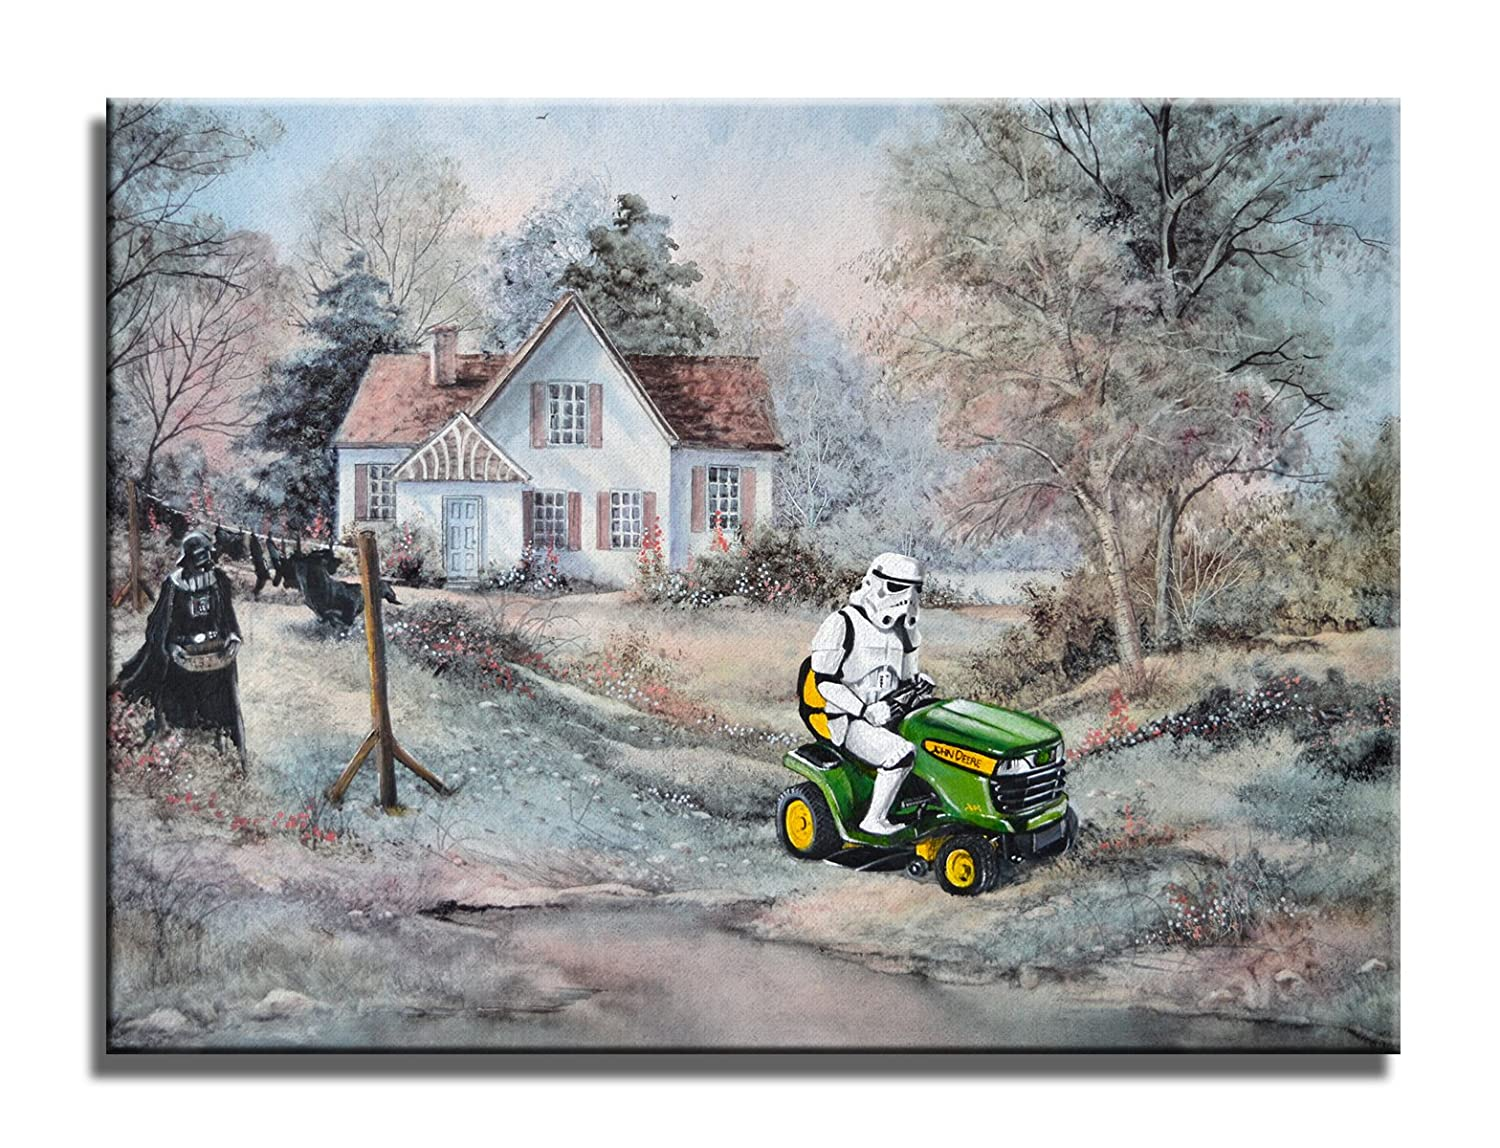 David Irvine Signed Authentic Official Pop A A Summer Place Stormtrooper Tractor Wrap Canvas Wall Art D/écor at 18in by 24in CNVDRV001